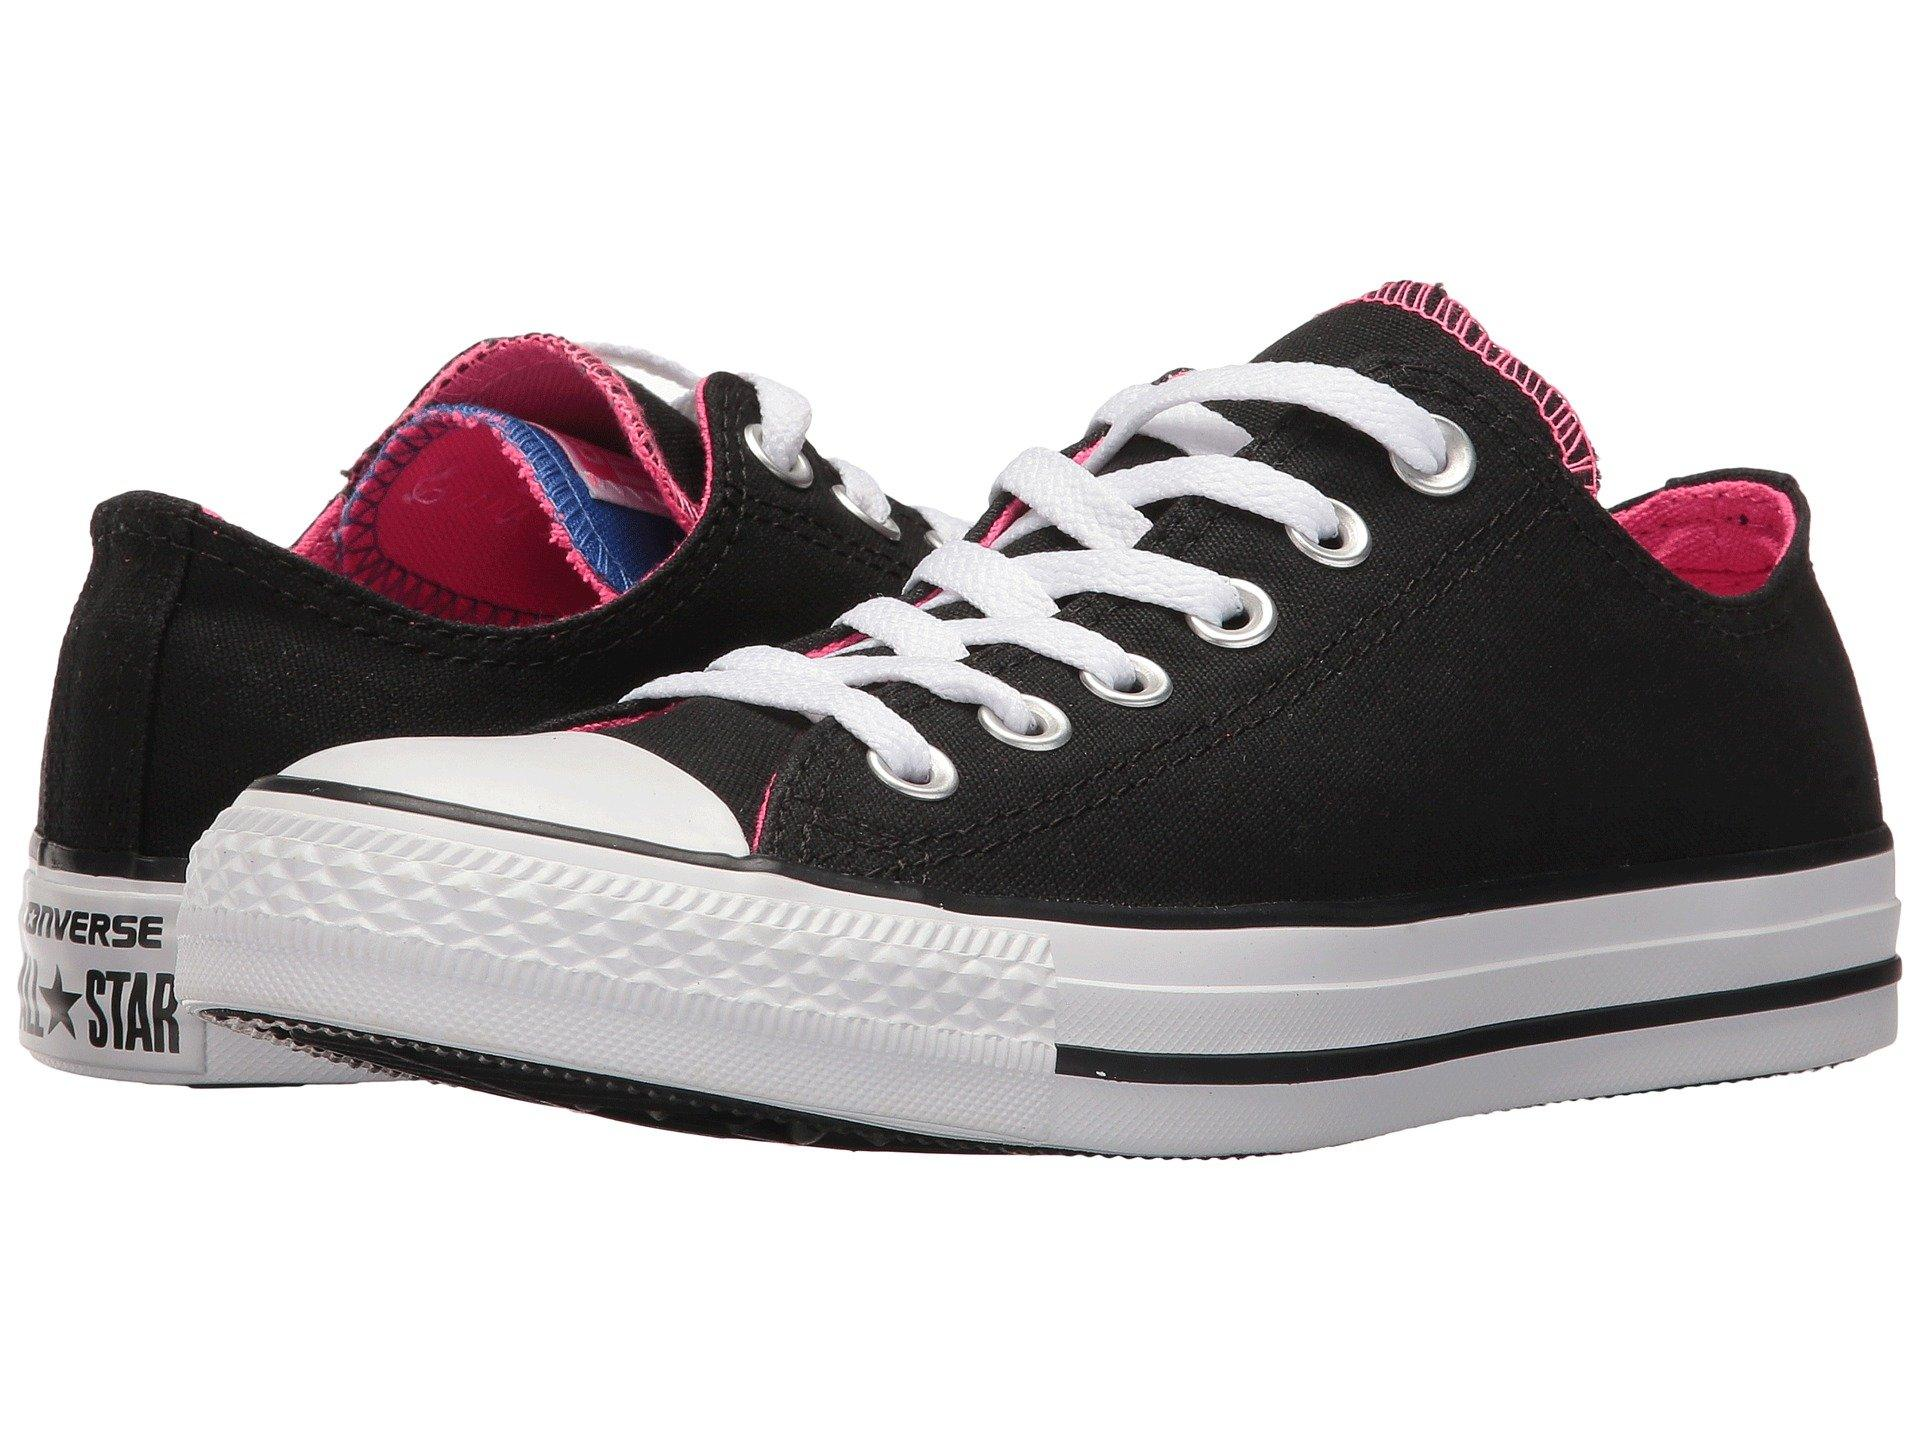 8b02073bef50 Converse Chuck Taylor All Star Double Tongue - Ox In Black Pink Pow White